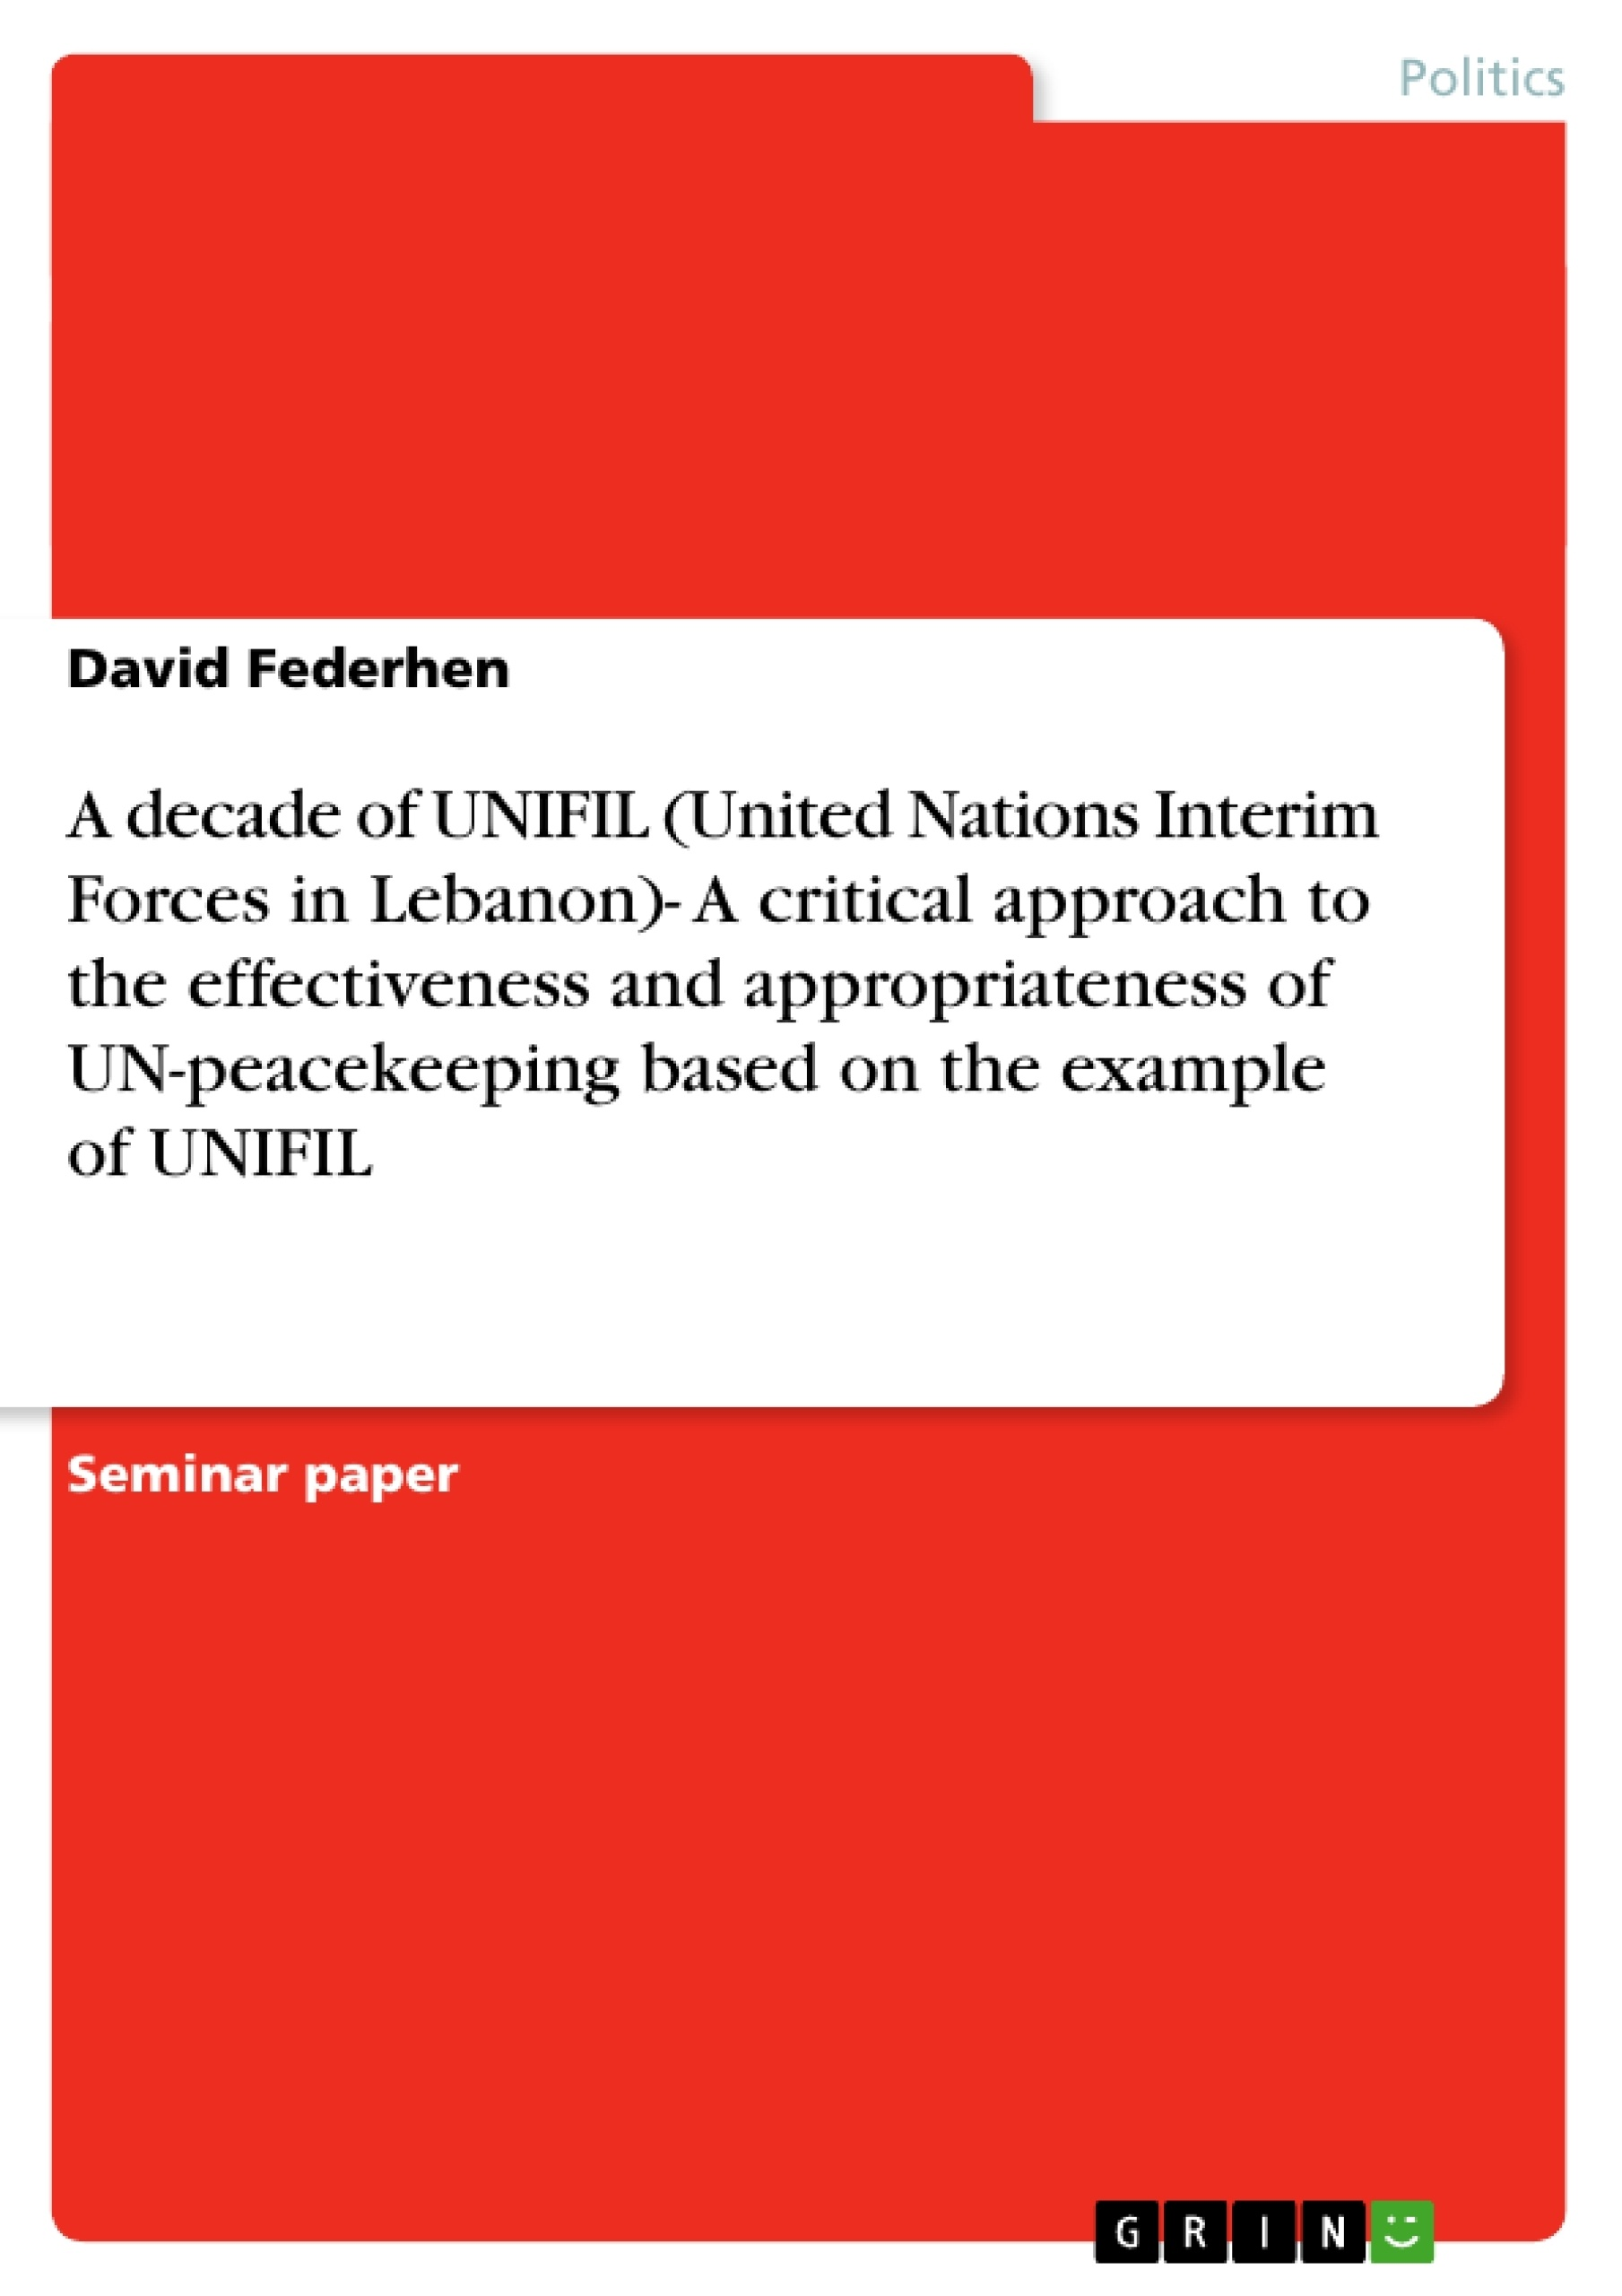 Title: A decade of UNIFIL (United Nations Interim Forces in Lebanon)- A critical approach to the effectiveness and appropriateness of UN-peacekeeping based on the example of UNIFIL